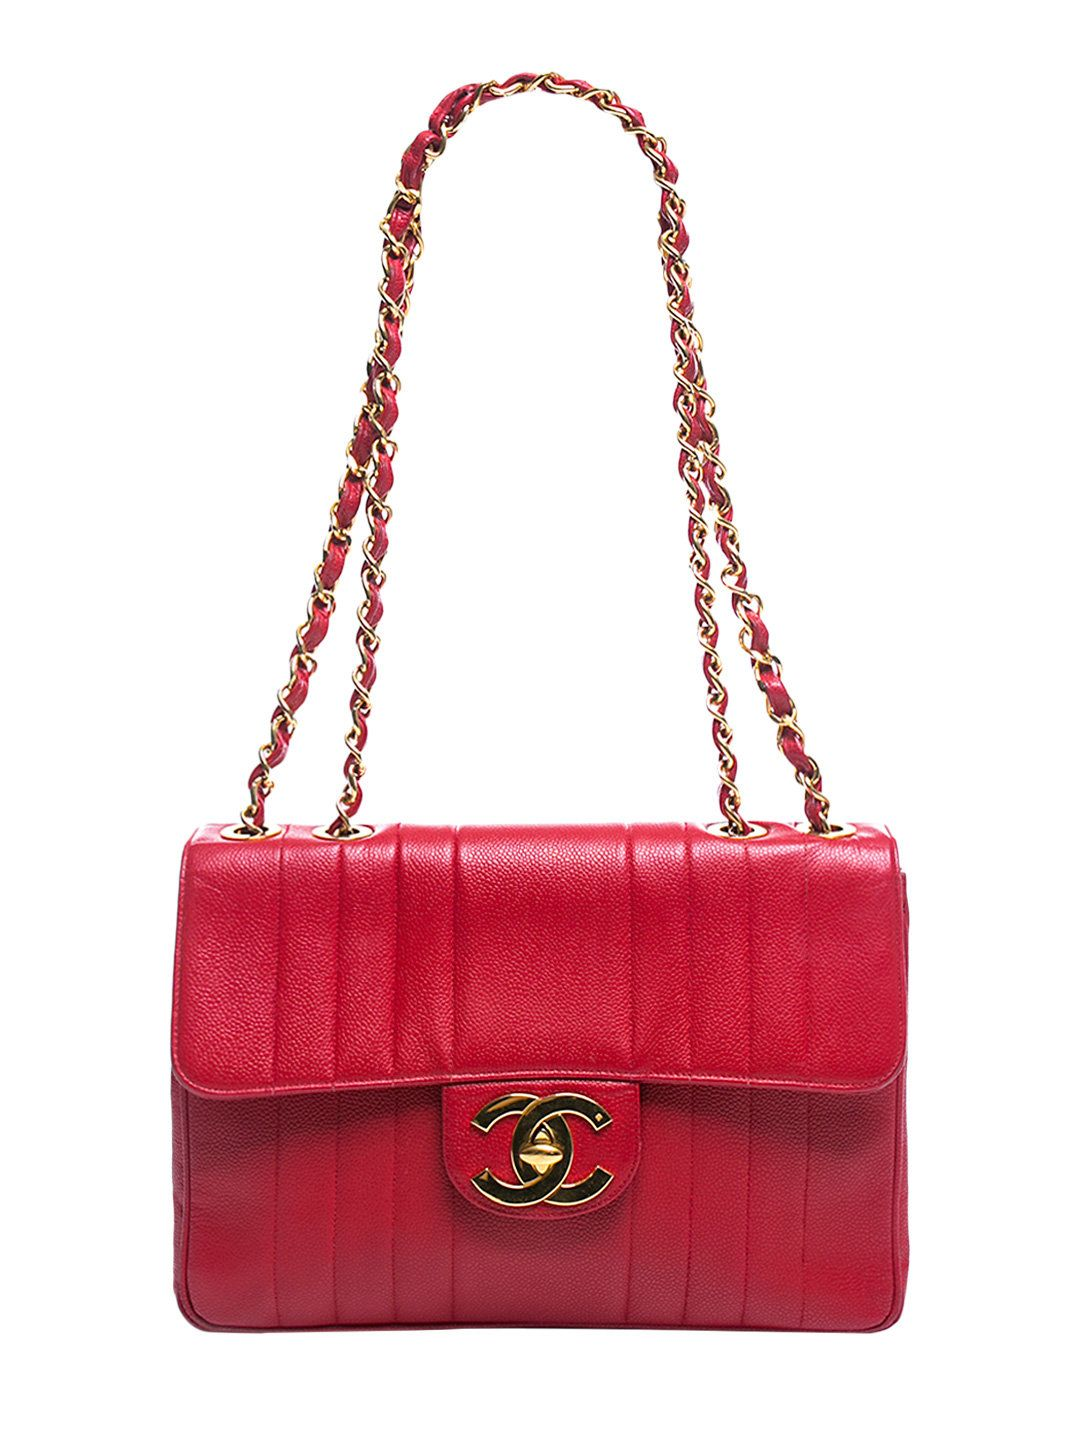 7964be73b48833 Red Caviar Vertical Jumbo Single Flap Bag by Chanel at Gilt | Chanel ...